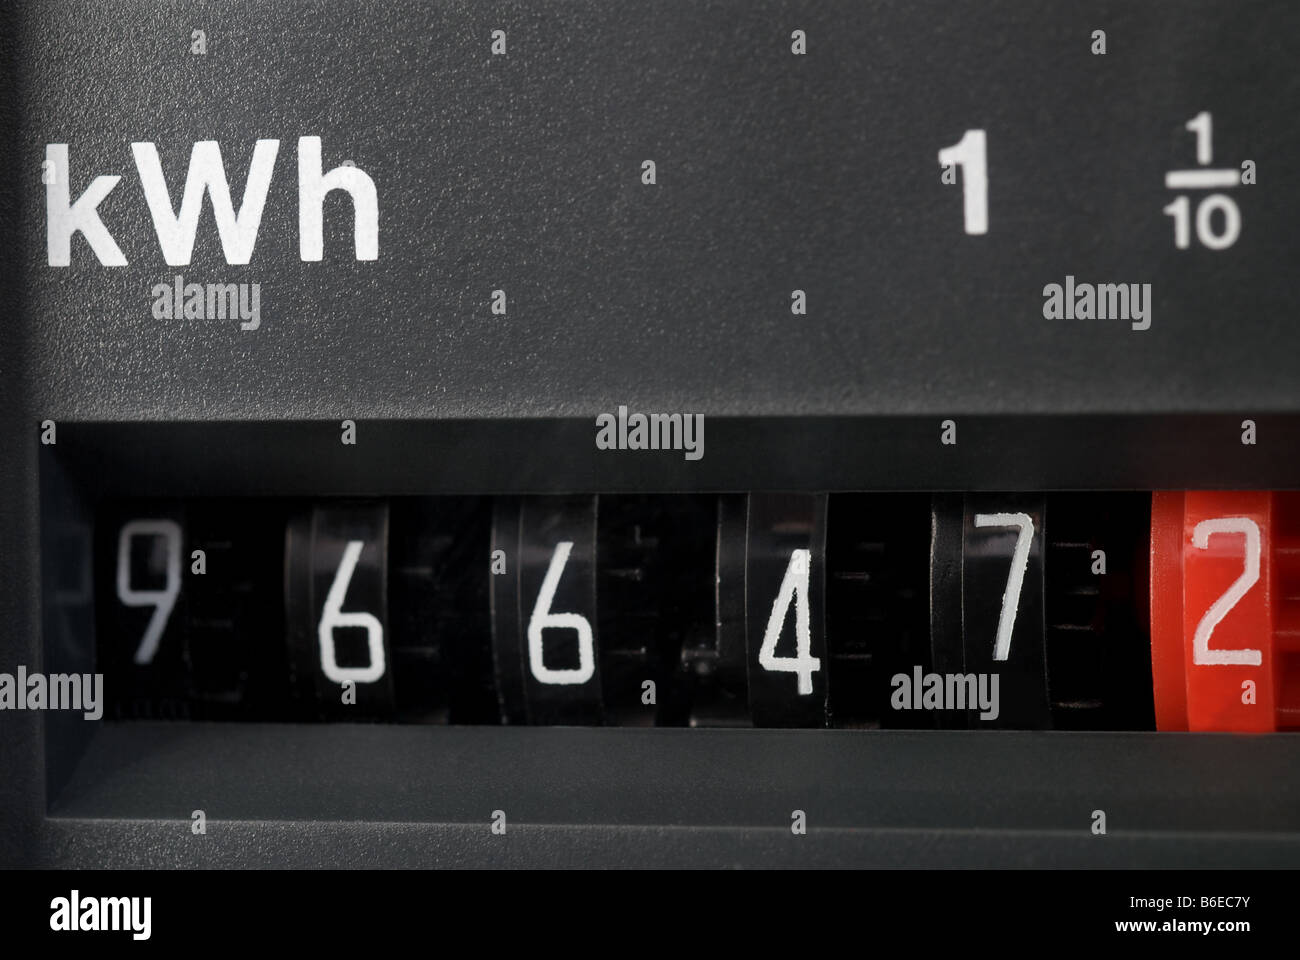 Domestic electricity meter, Suffolk, UK. - Stock Image